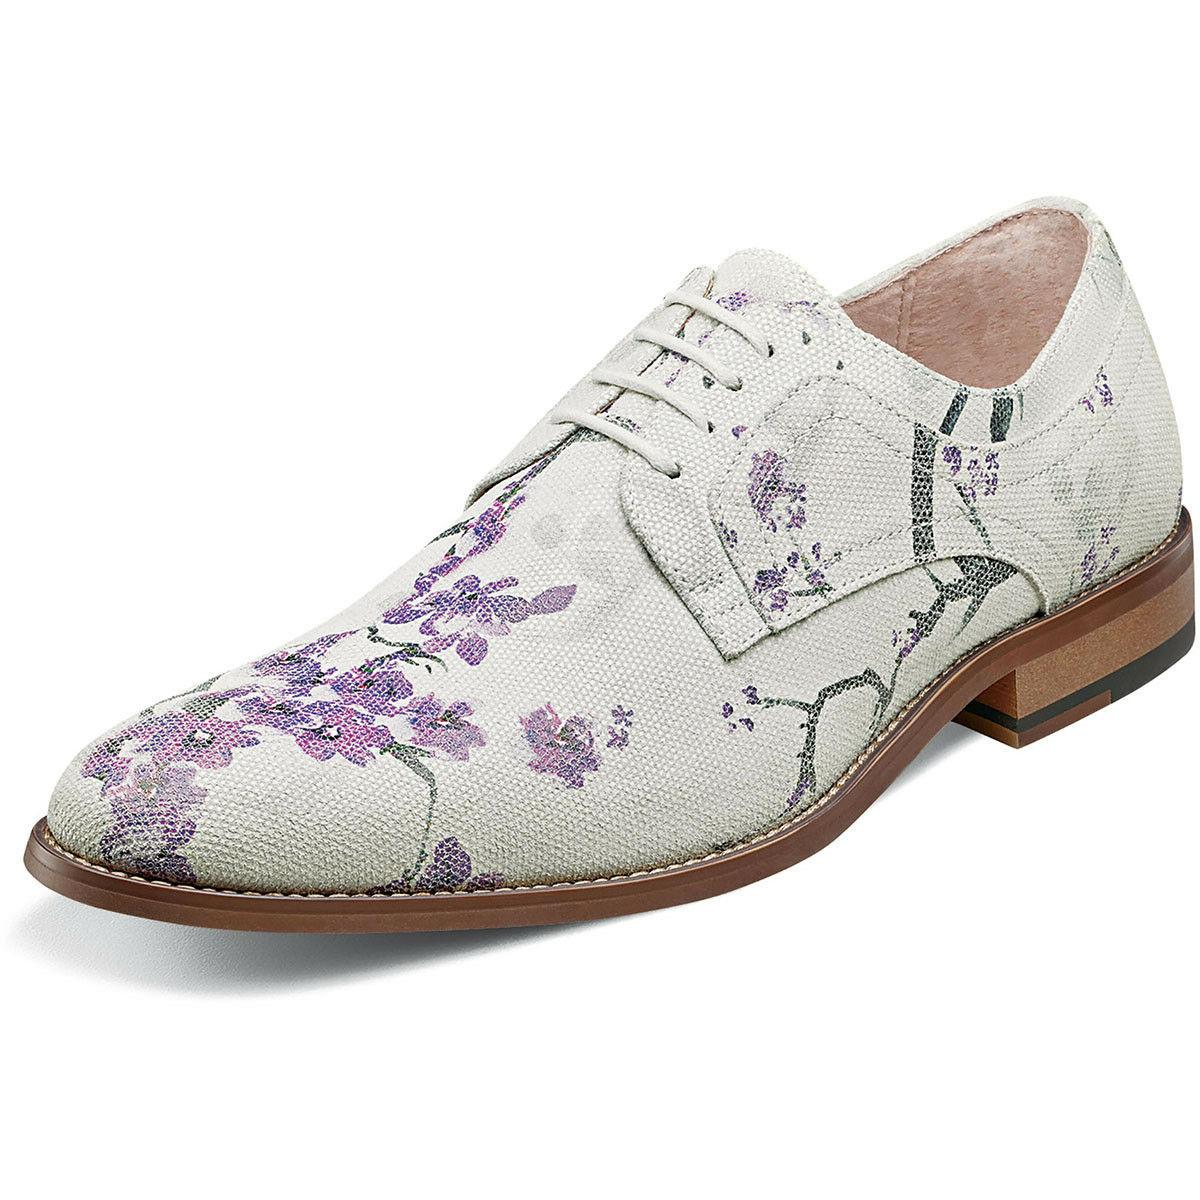 dandy men s oxfords lavender multi dress